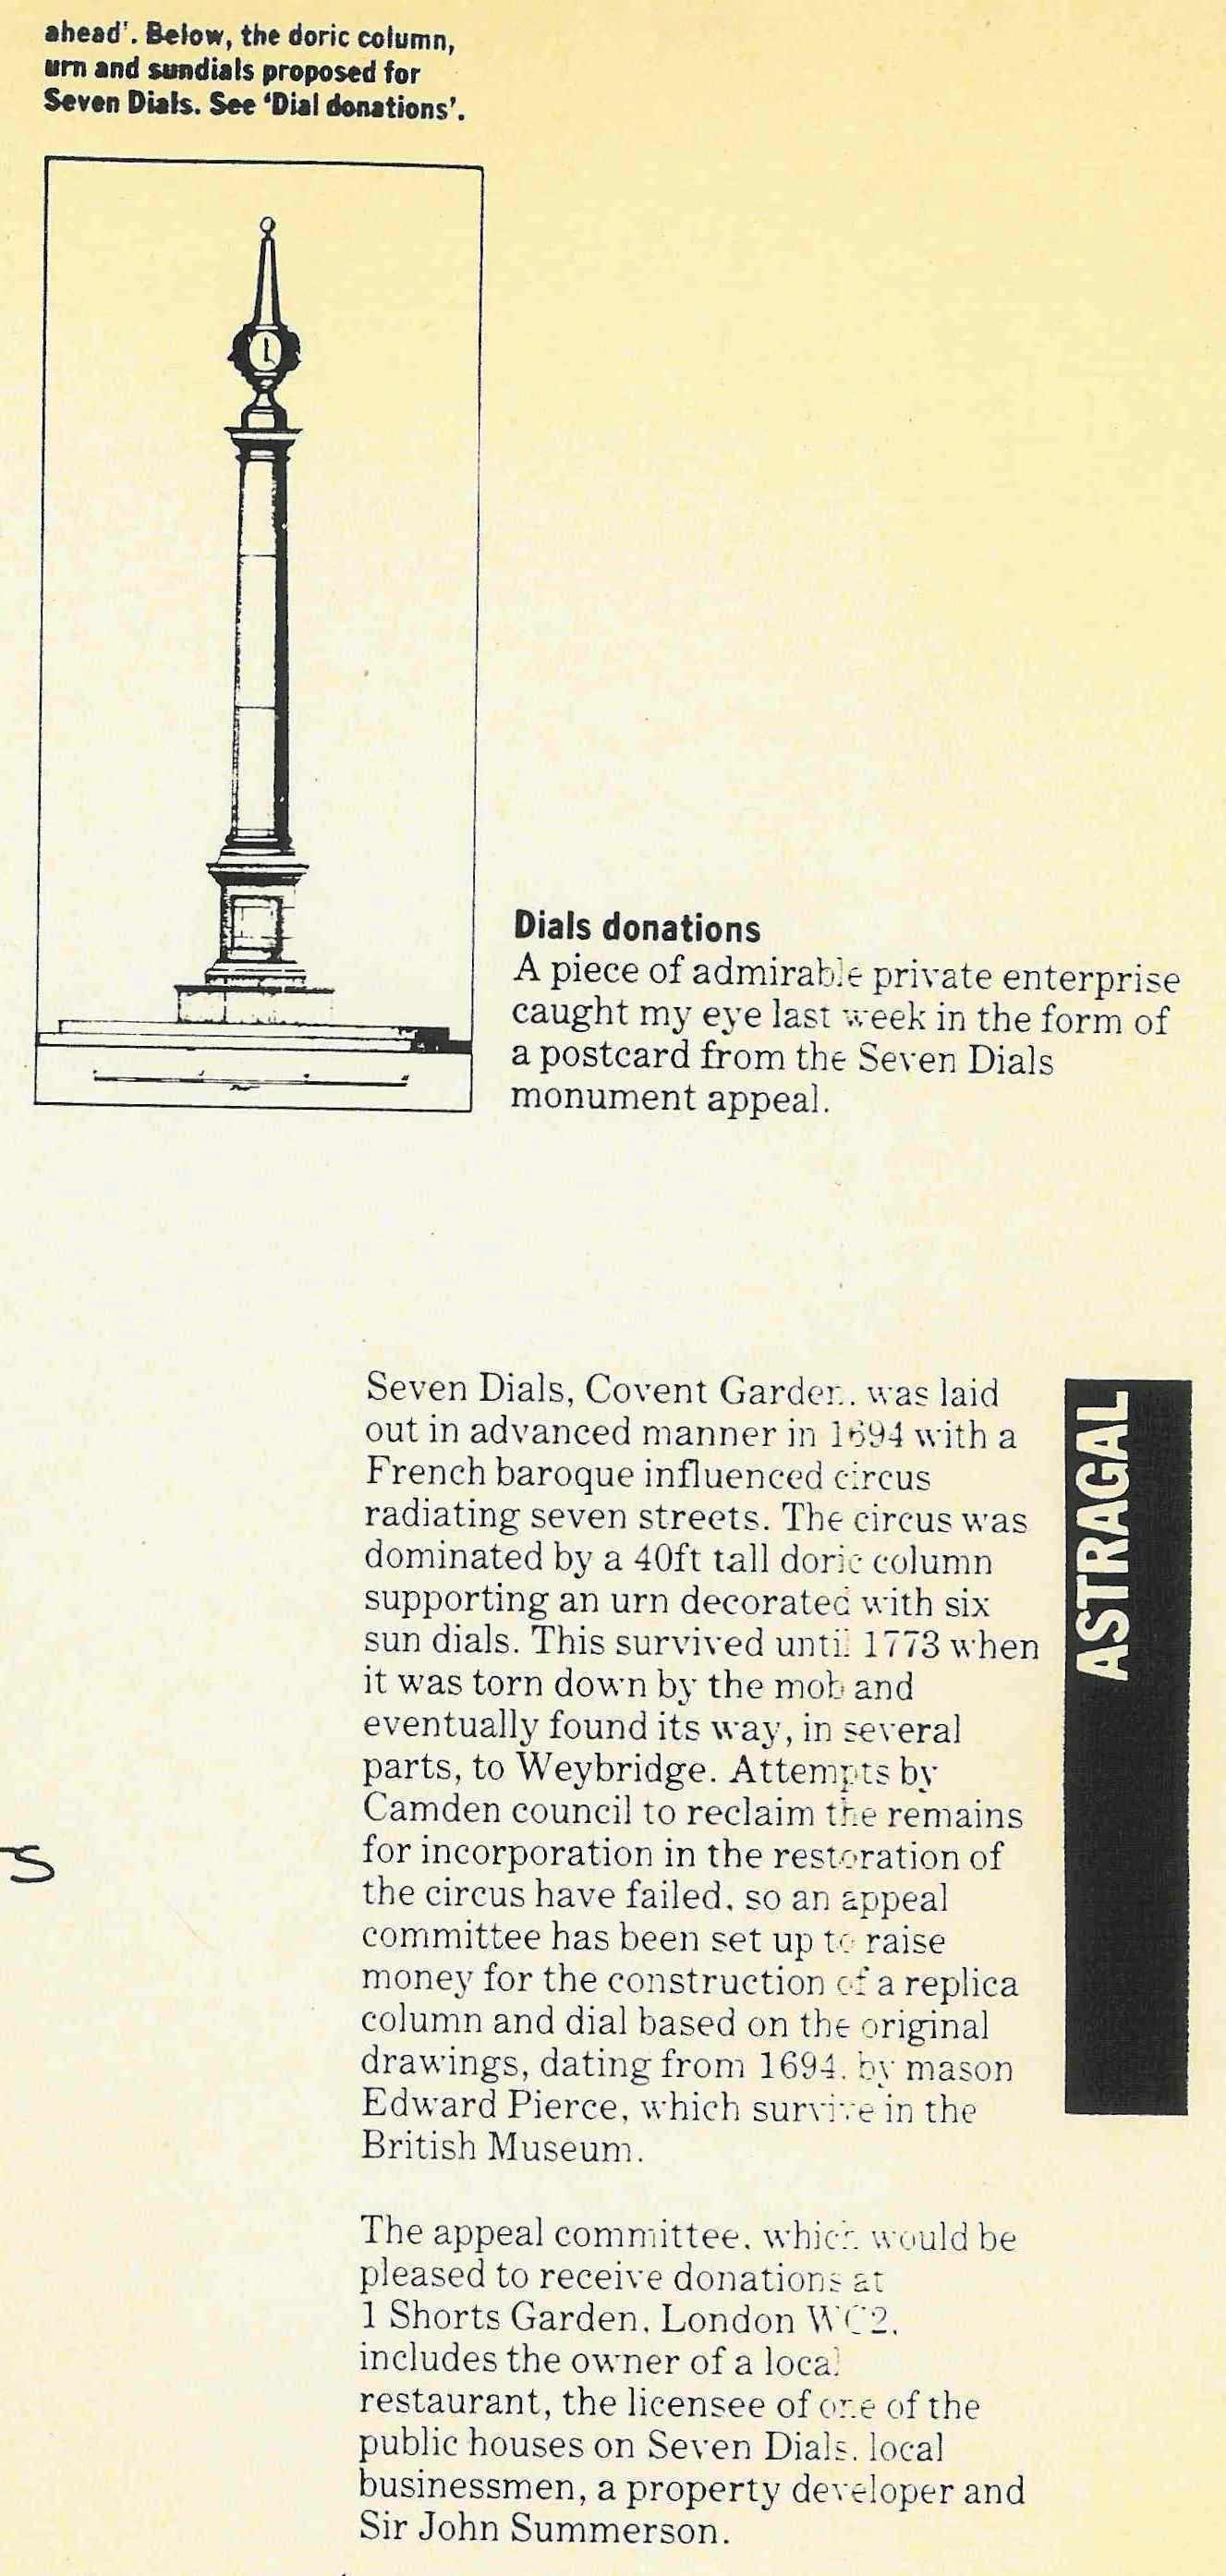 31 July 1985 � Architects Journal: A piece of admirable private enterprise�